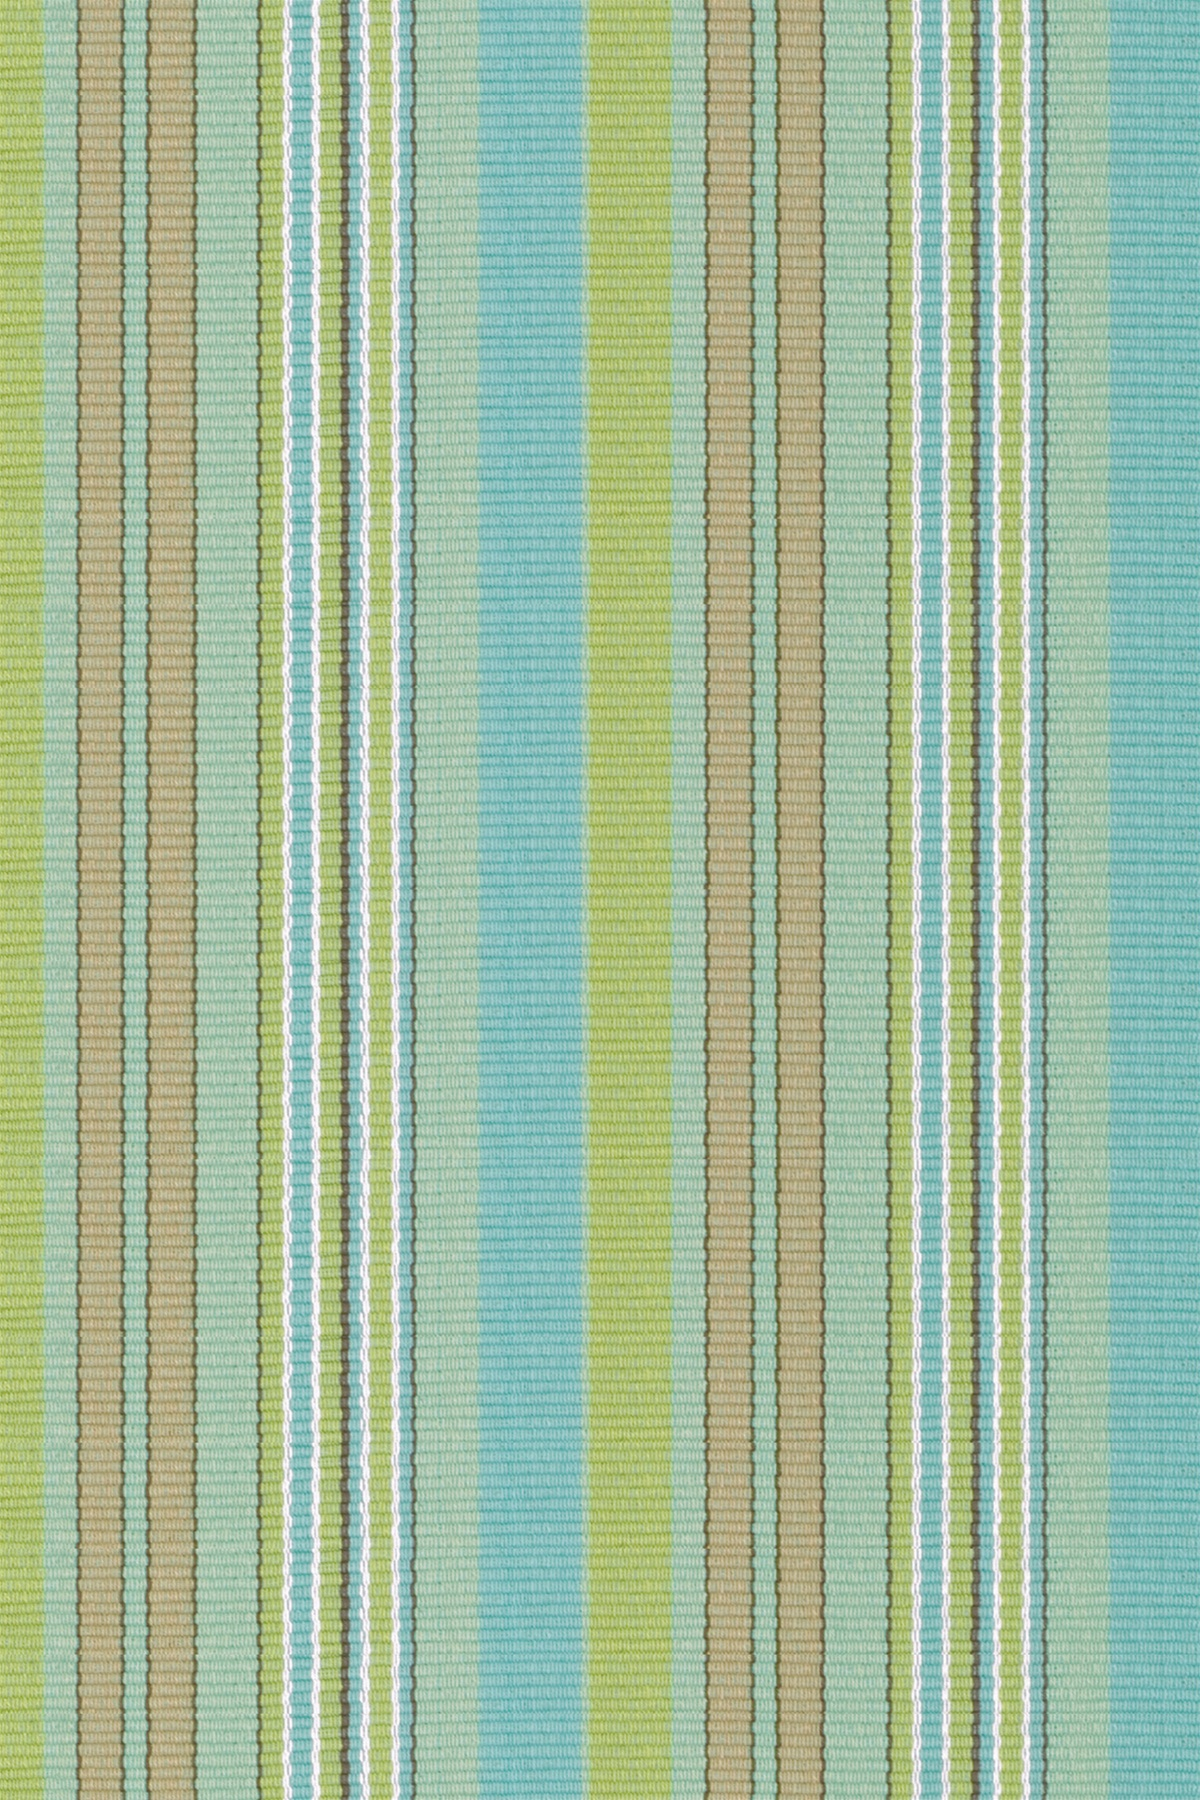 awesome stripped Dash And Albert Rugs aquinnah cotton for floor decor ideas